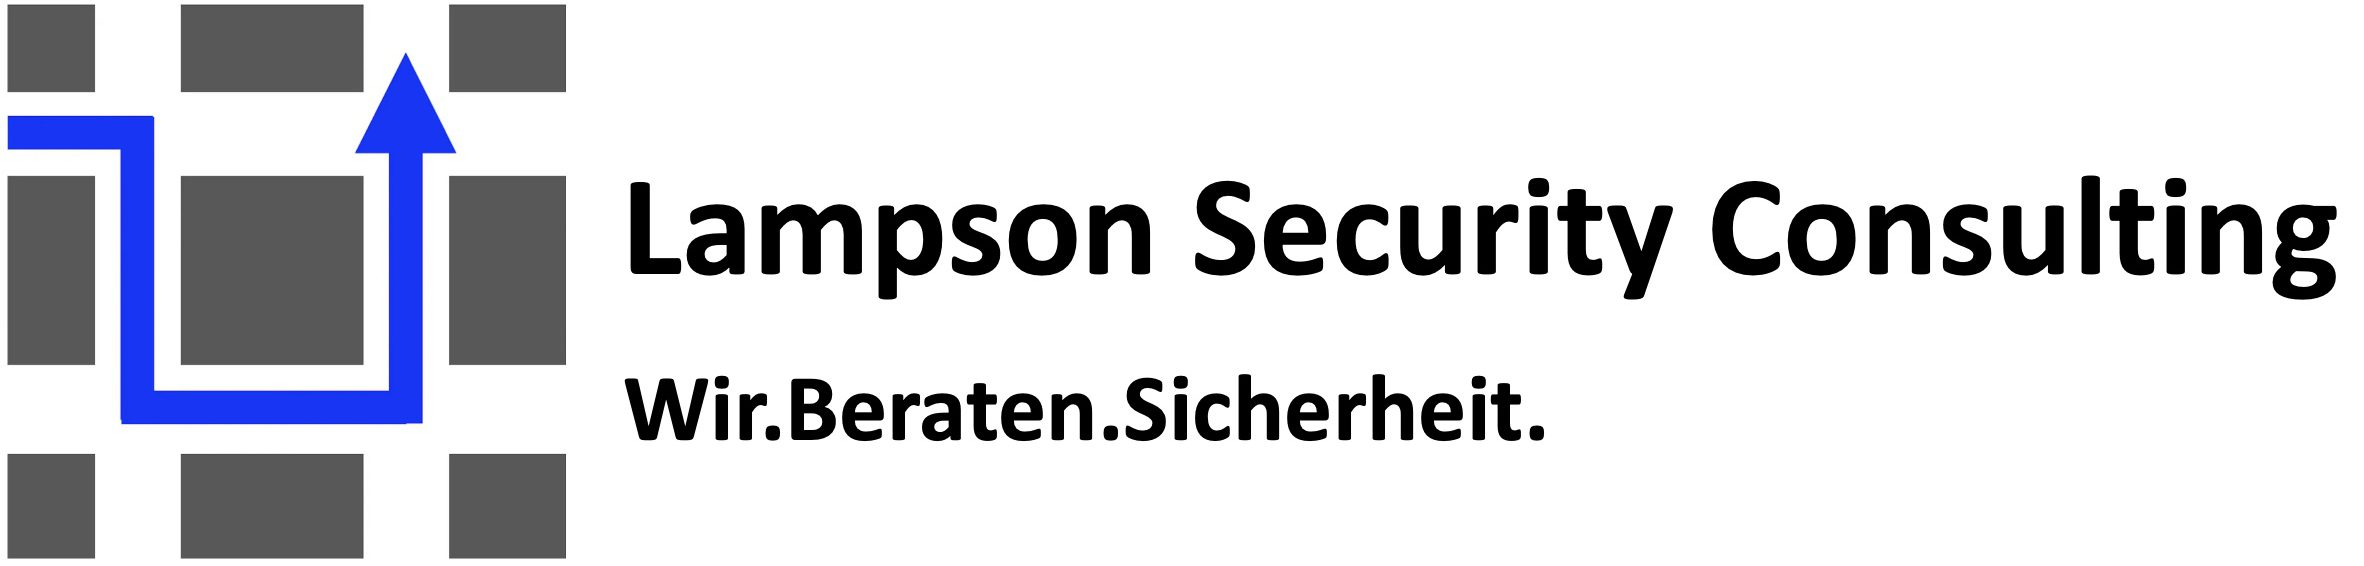 Lampson Security Consulting